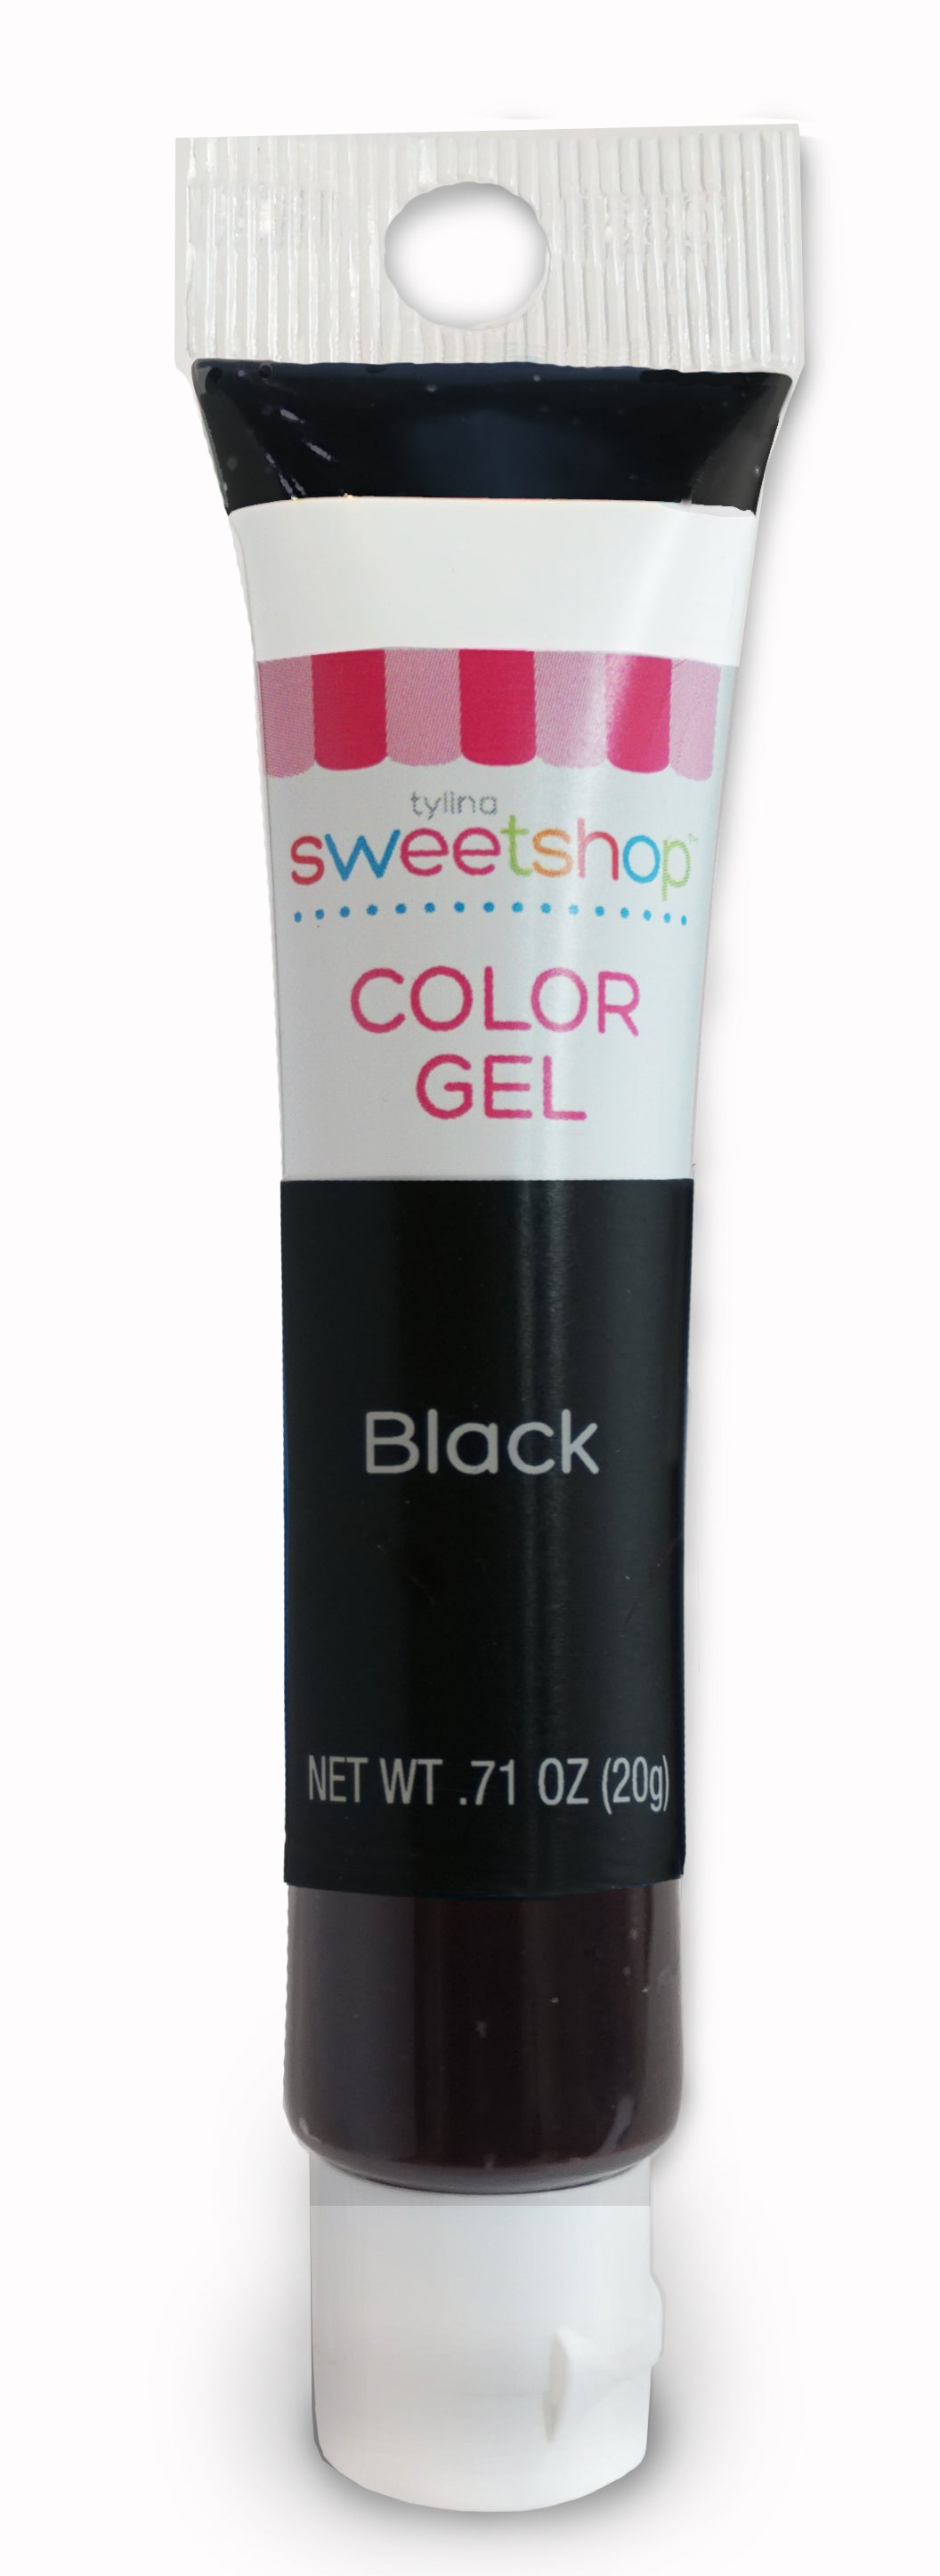 Sweetshop Black Gel Color